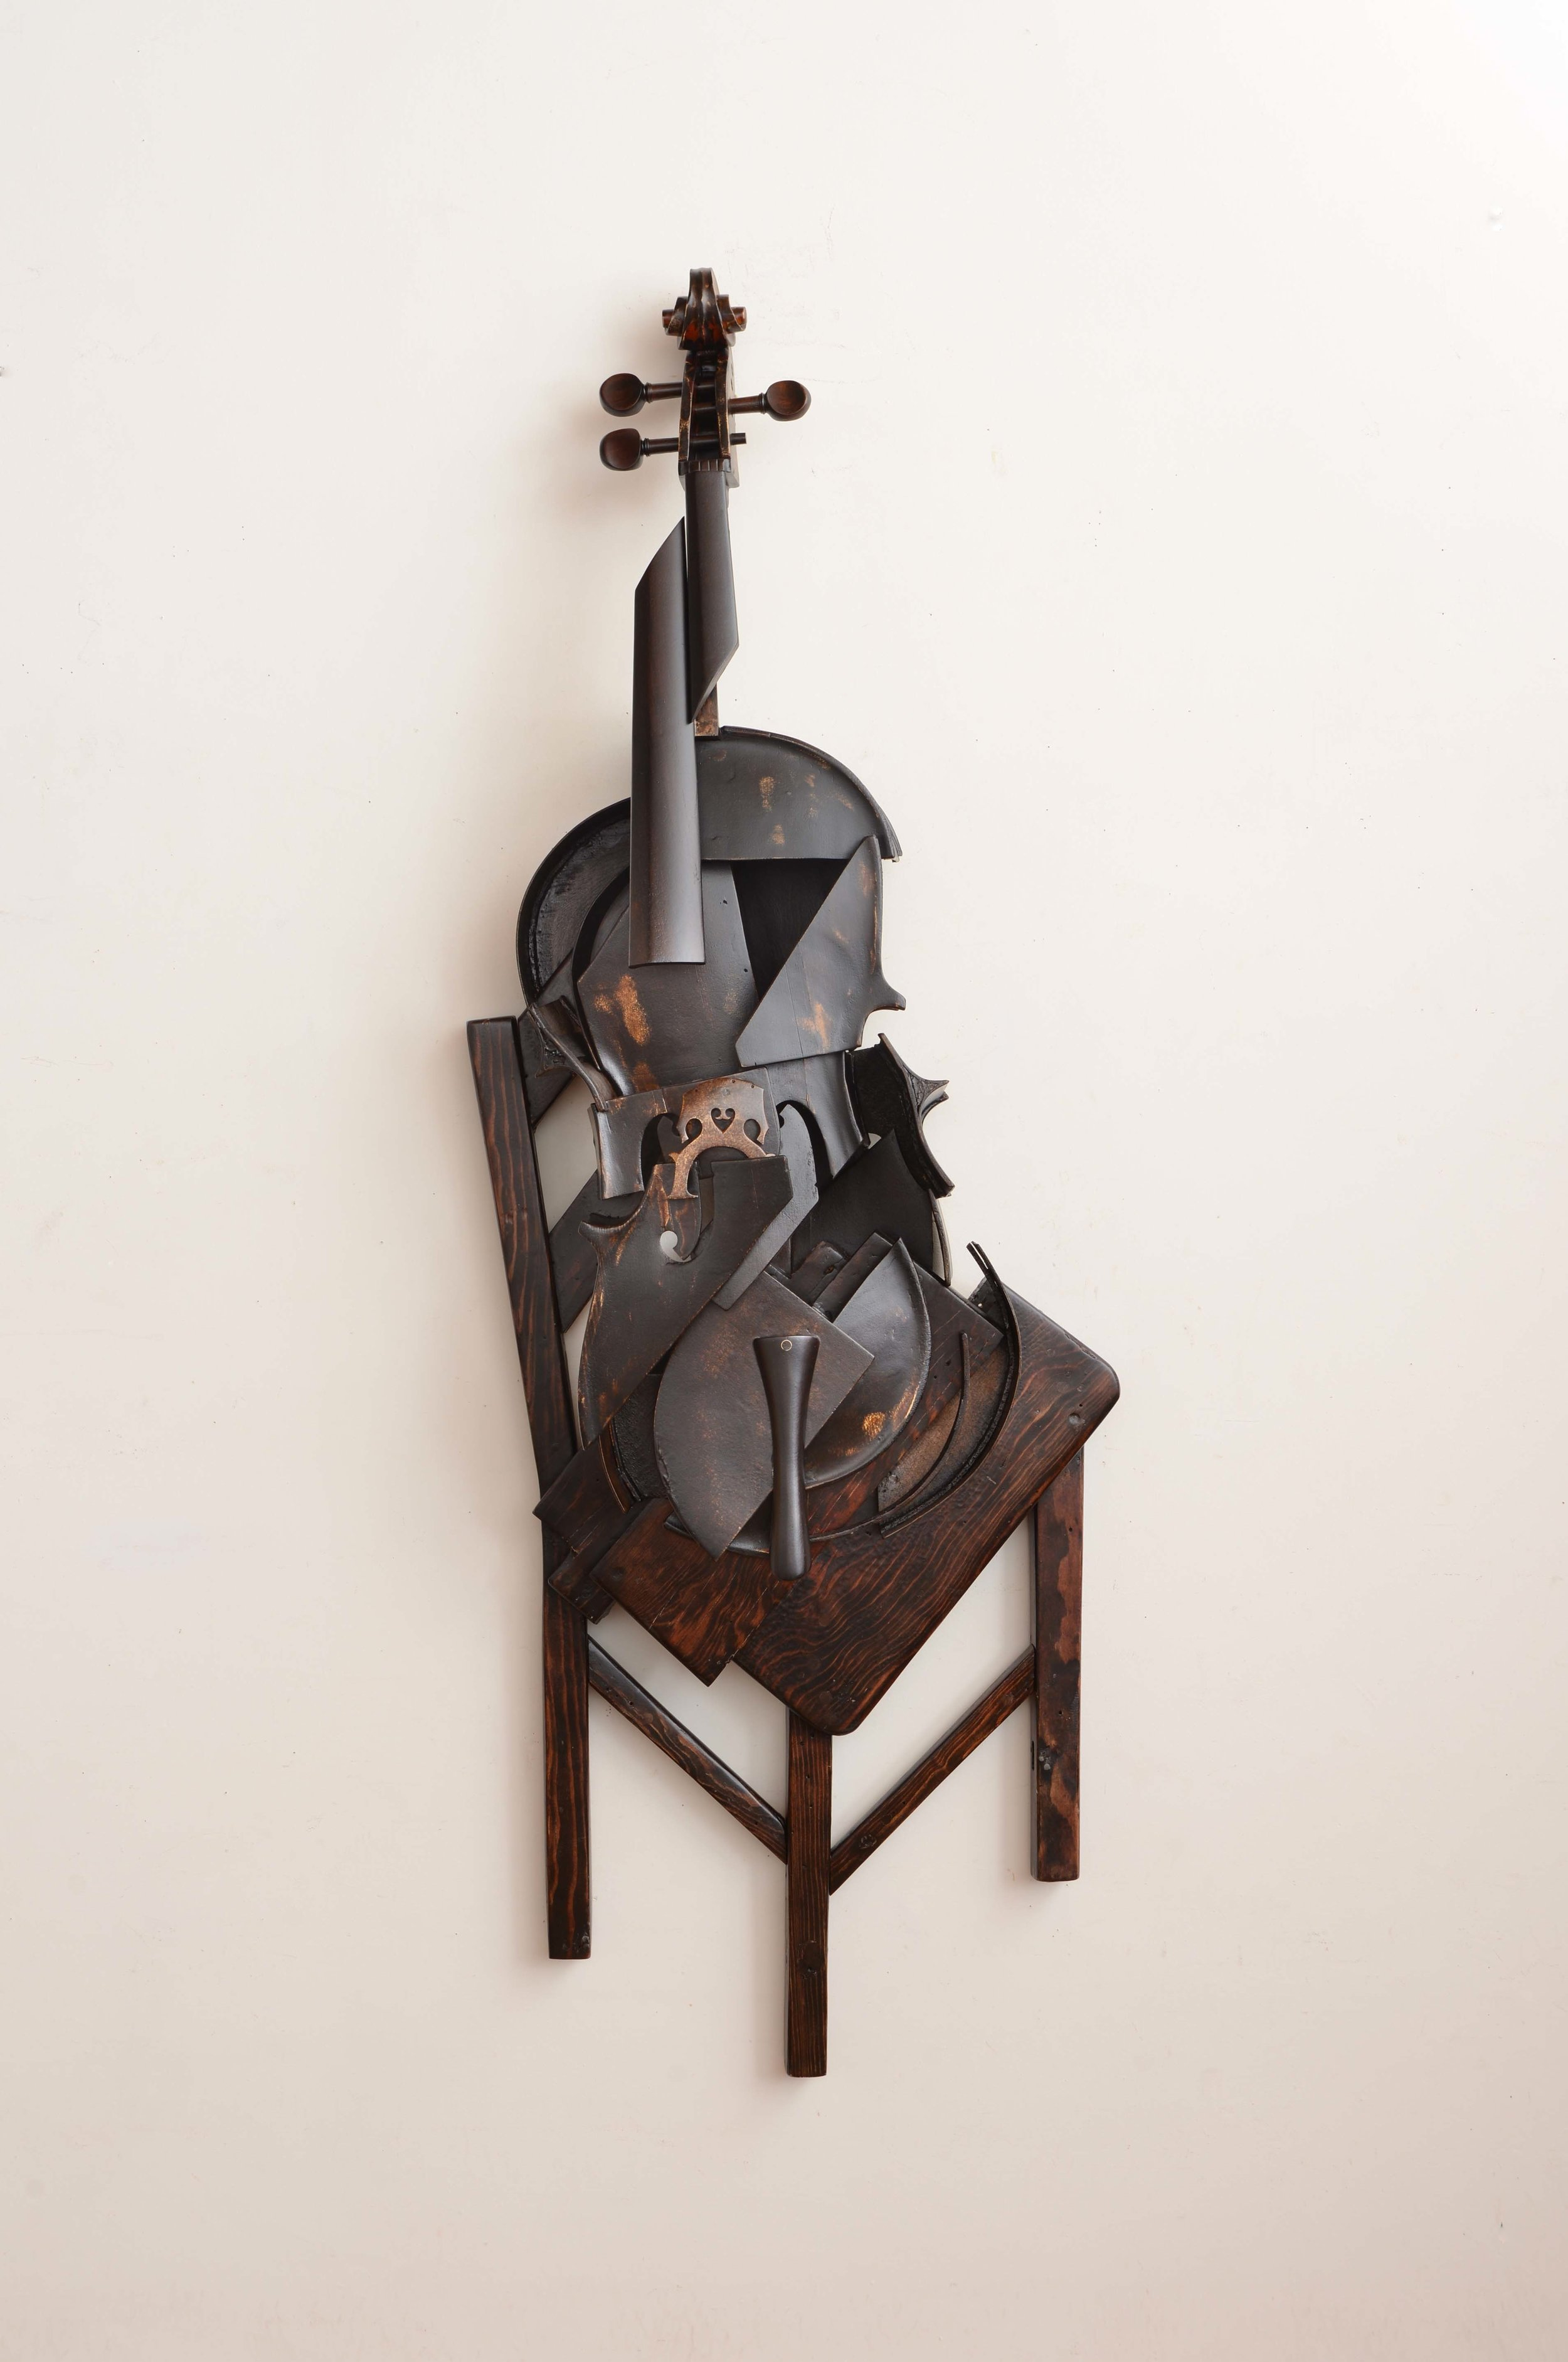 Koji Takei, Cello and Chair 2, 2013, 58x20x8, wood, metal and stain